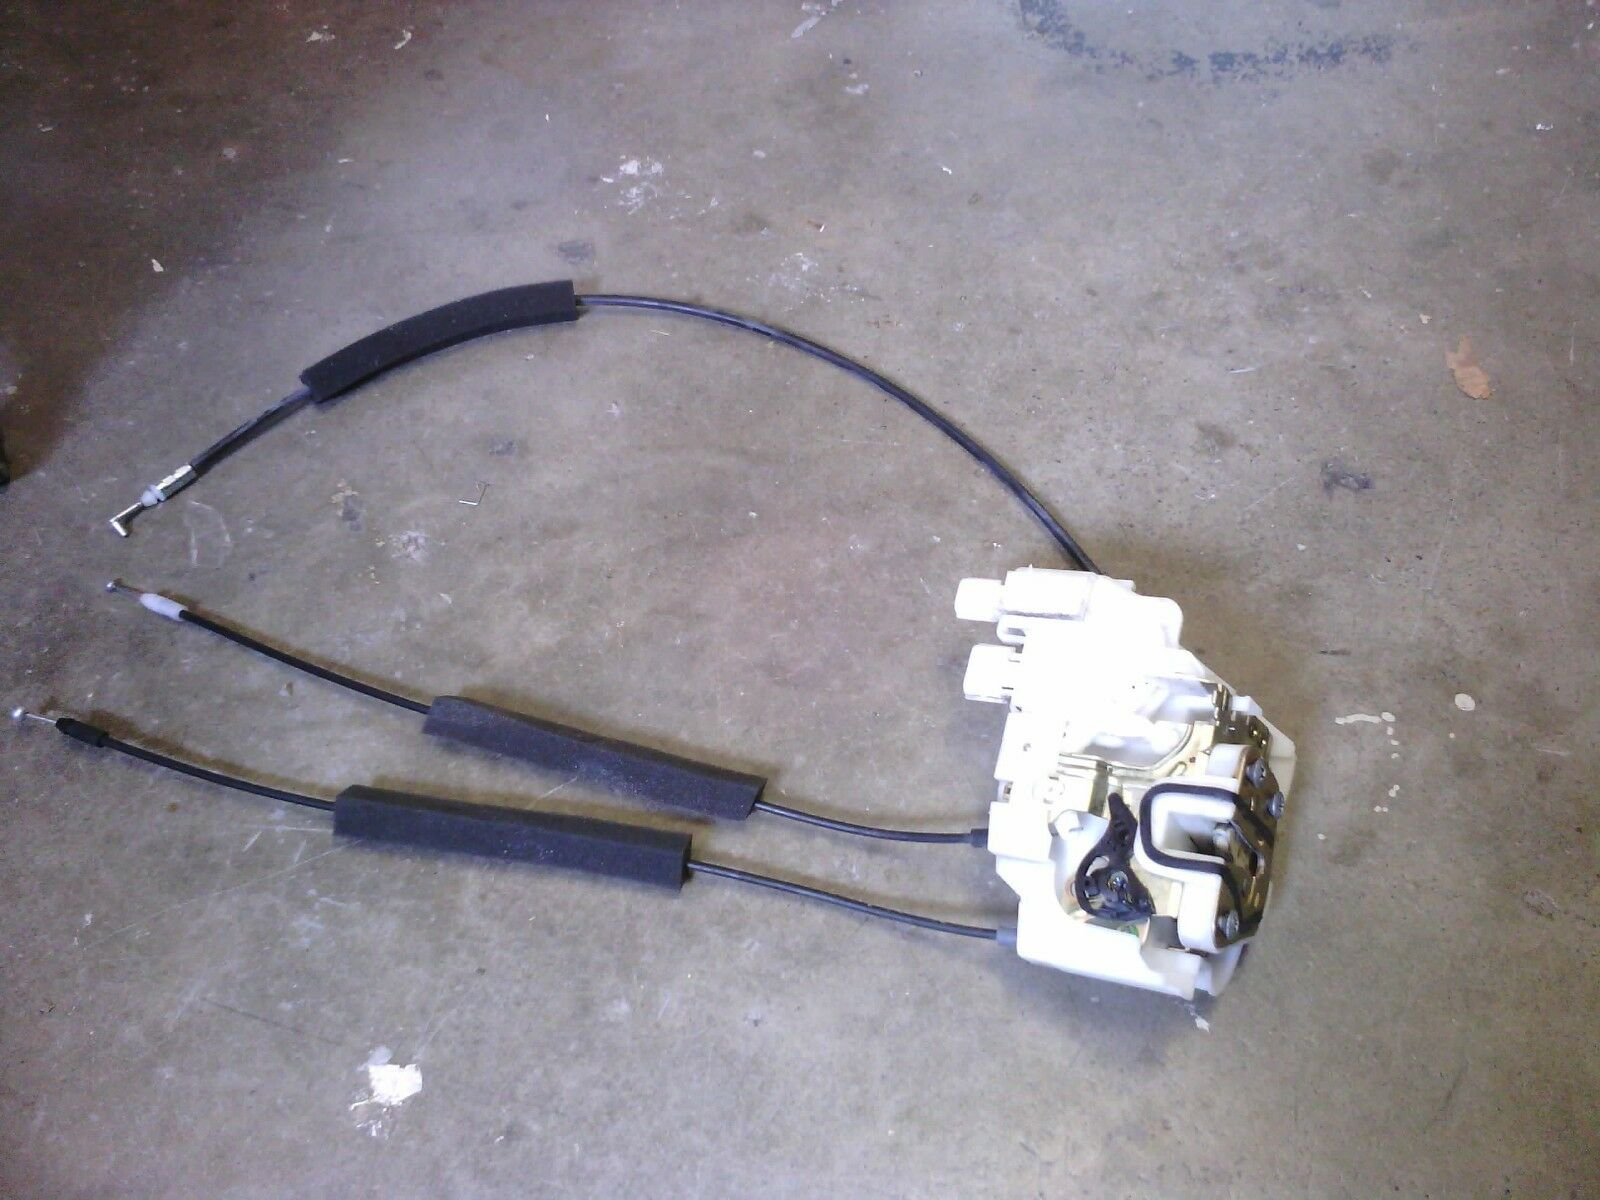 Used Subaru Interior Door Panels And Parts For Sale Page 20 2005 Outback Seat Wiring Oem Latch Actuator 2008 Legacy Lh Rear 61034ag01c 61100ag01a